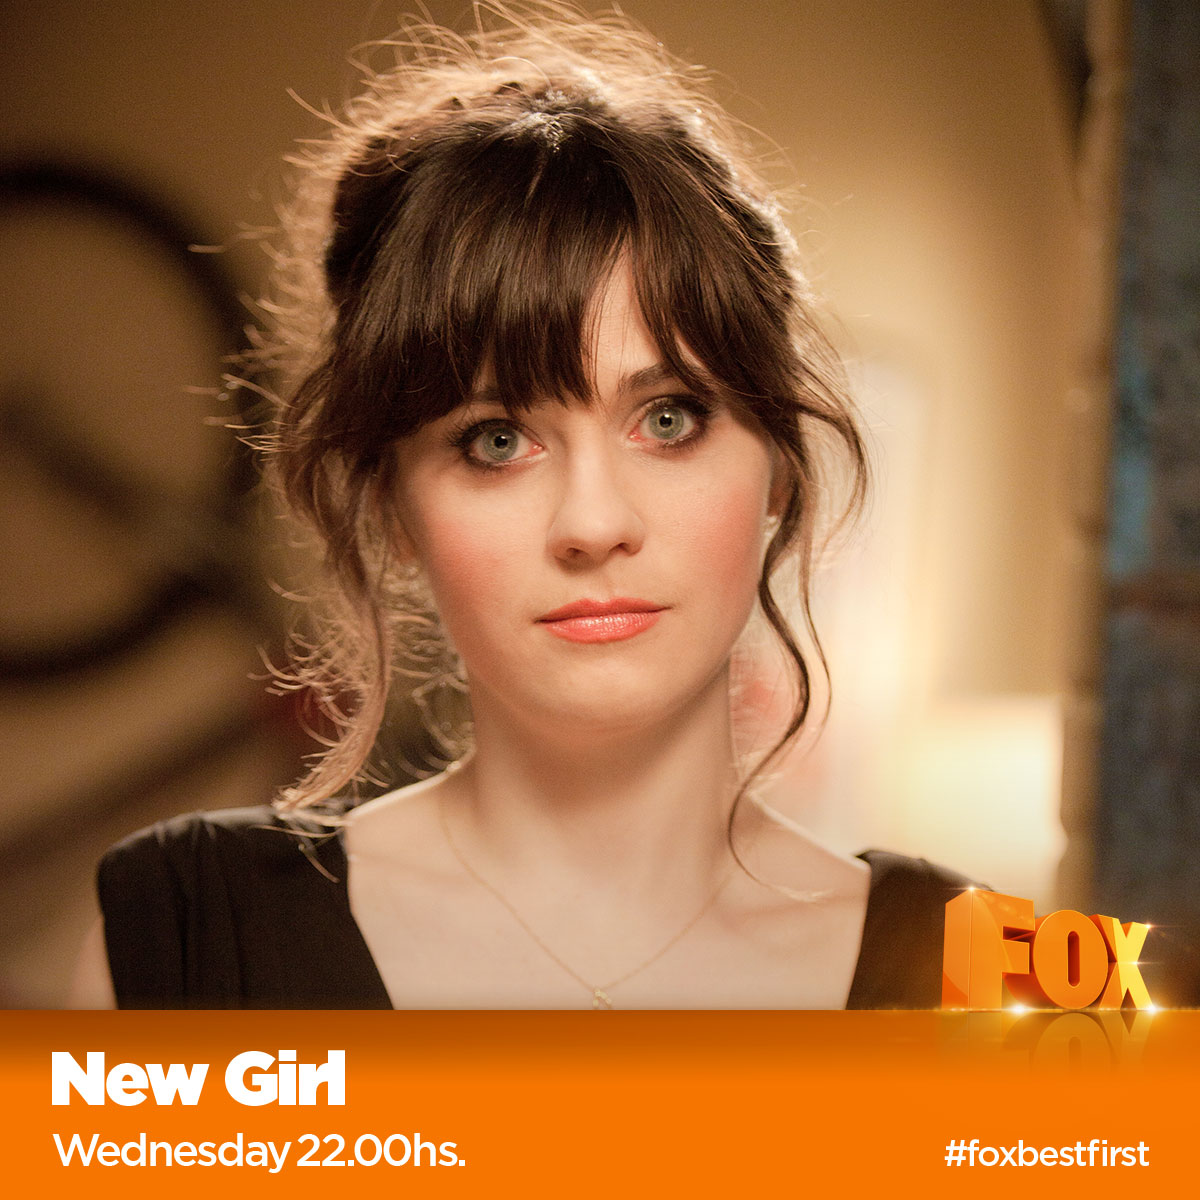 social branding fox new girl